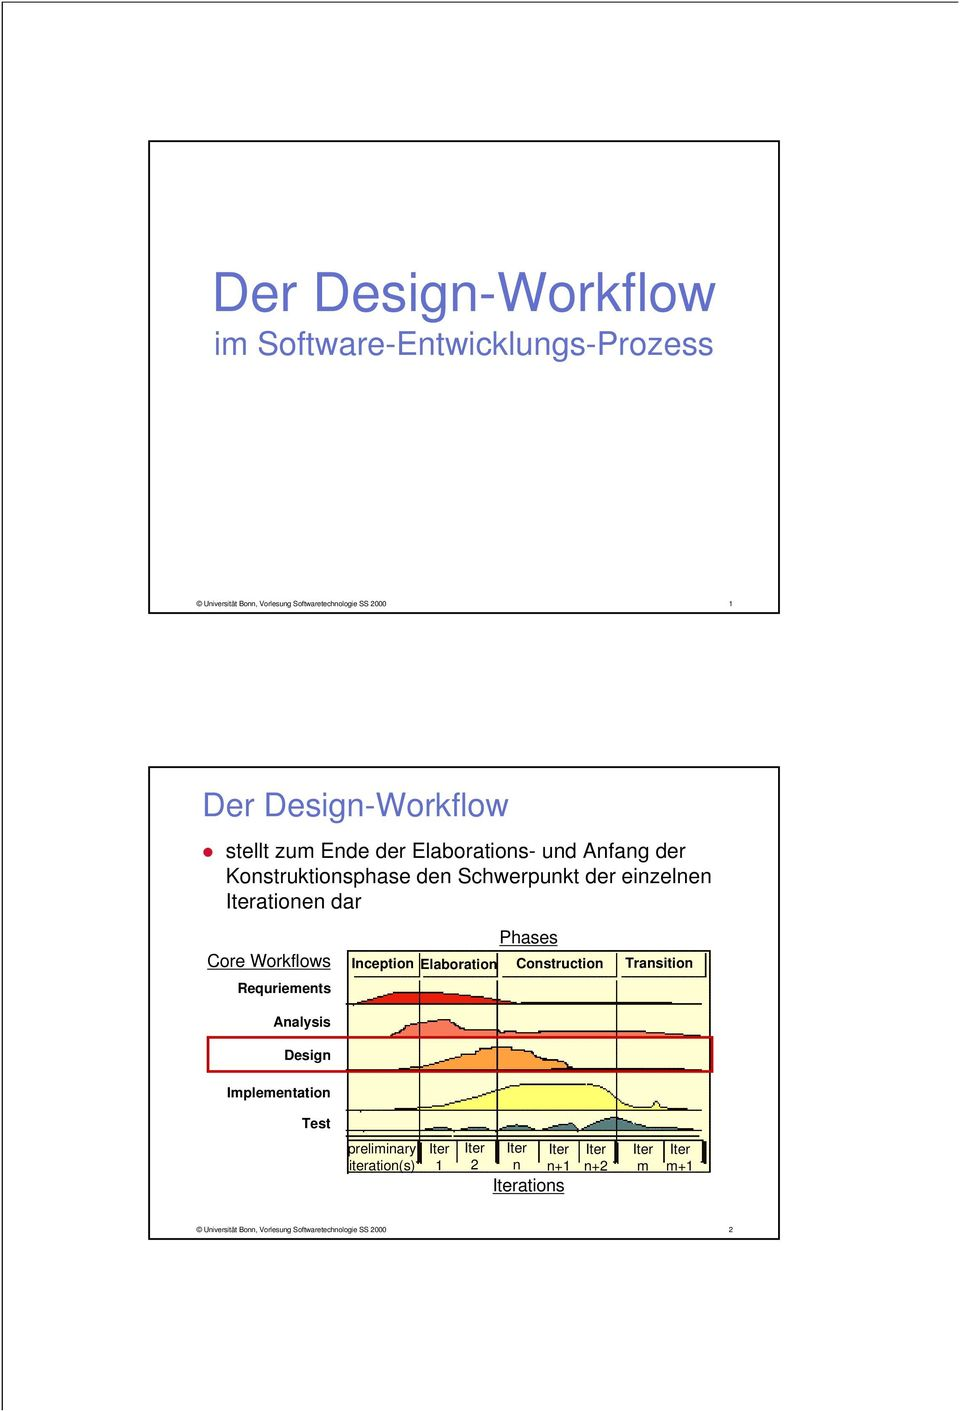 Workflows Requriements Analysis Implementation Phases Inception Elaboration Construction Transition preliminary